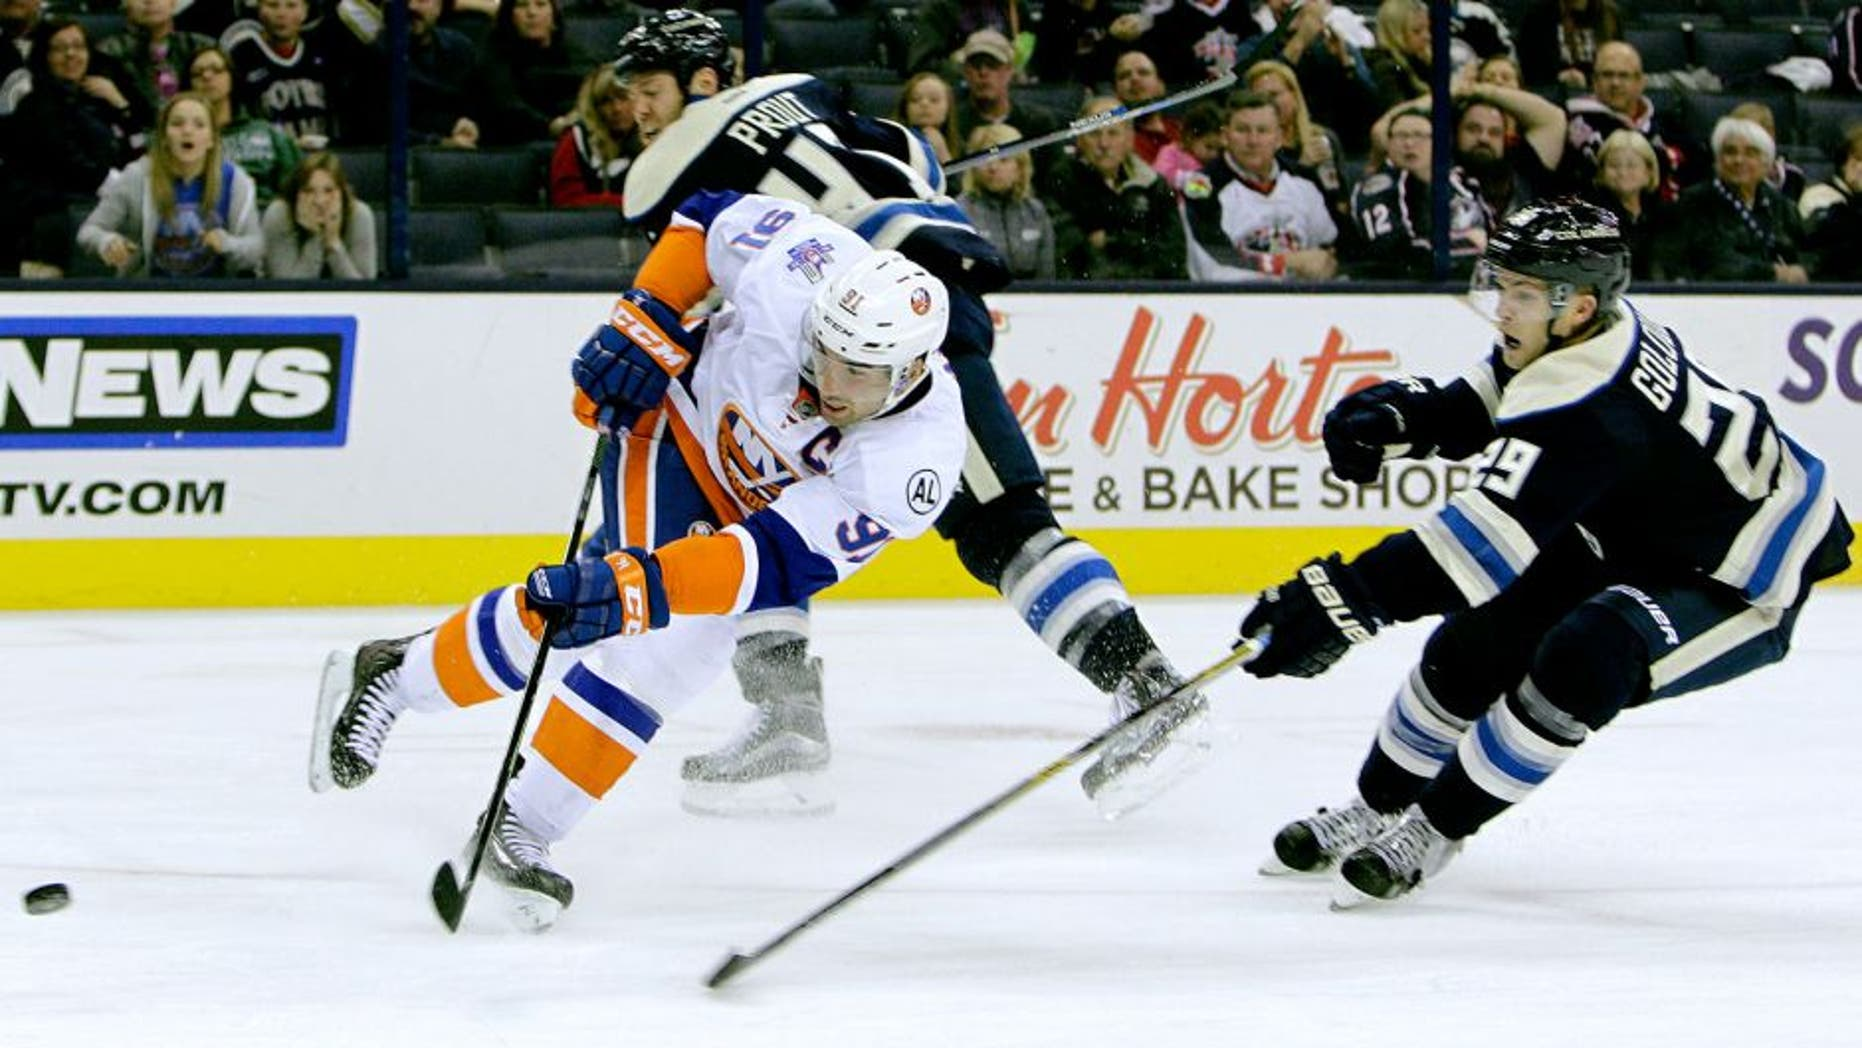 New York Islanders' John Tavares, left, shoots and scores a goal between Columbus Blue Jackets' Dalton Prout, back, and Cody Goloubef during the third period of an NHL hockey game Tuesday, Oct. 20, 2015, in Columbus, Ohio. The Islanders beat the Blue Jackets 4-0. (AP Photo/Jay LaPrete)